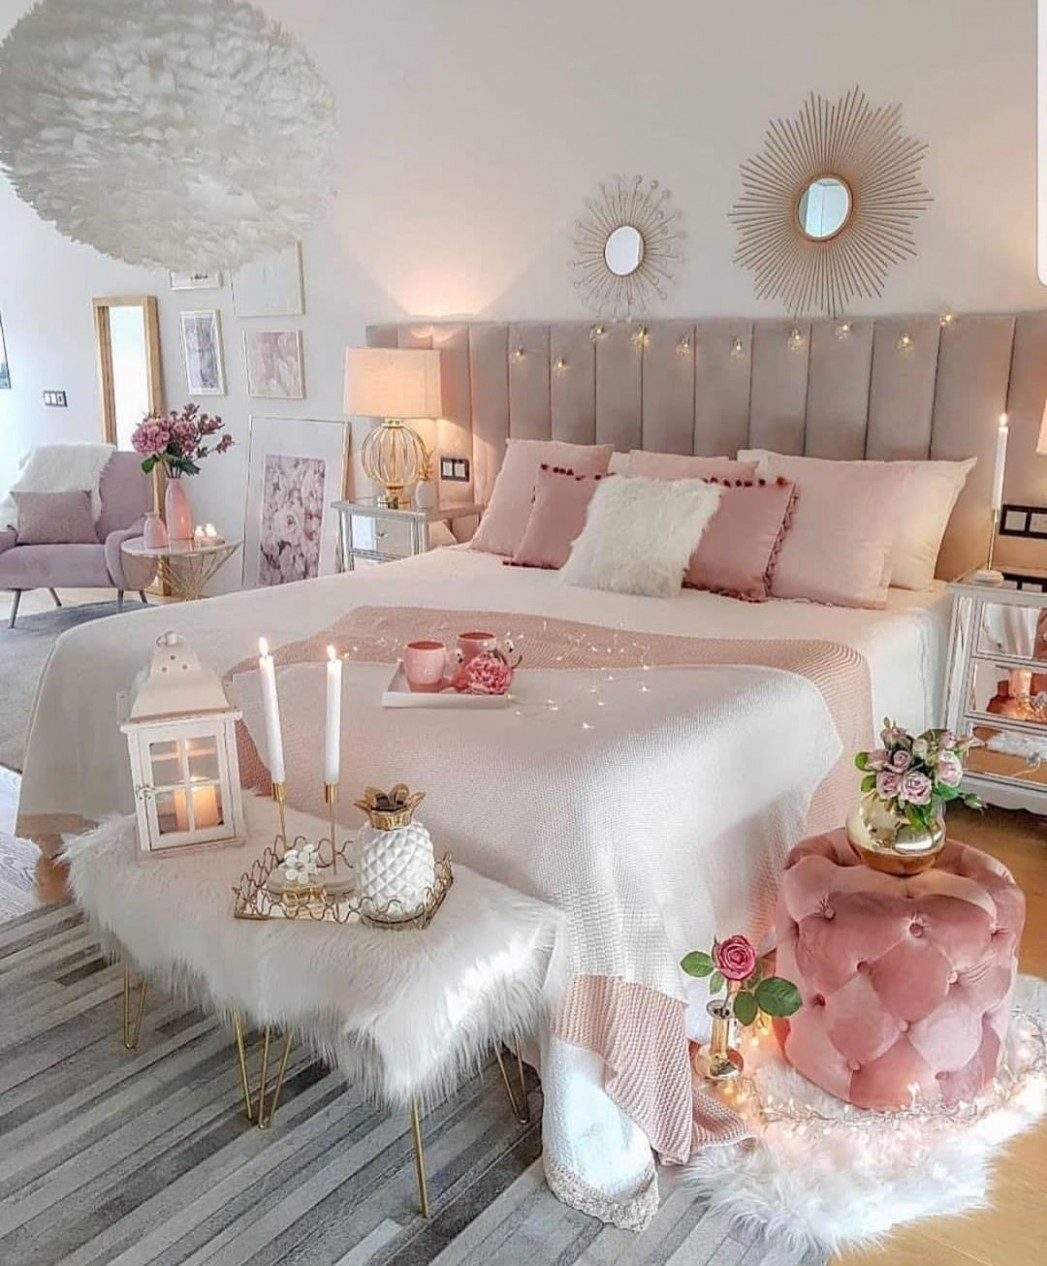 "Olivia Jent on Instagram: ""Bedroom goals 🙌🏼 YAY or NAY  - Bedroom Ideas Instagram"